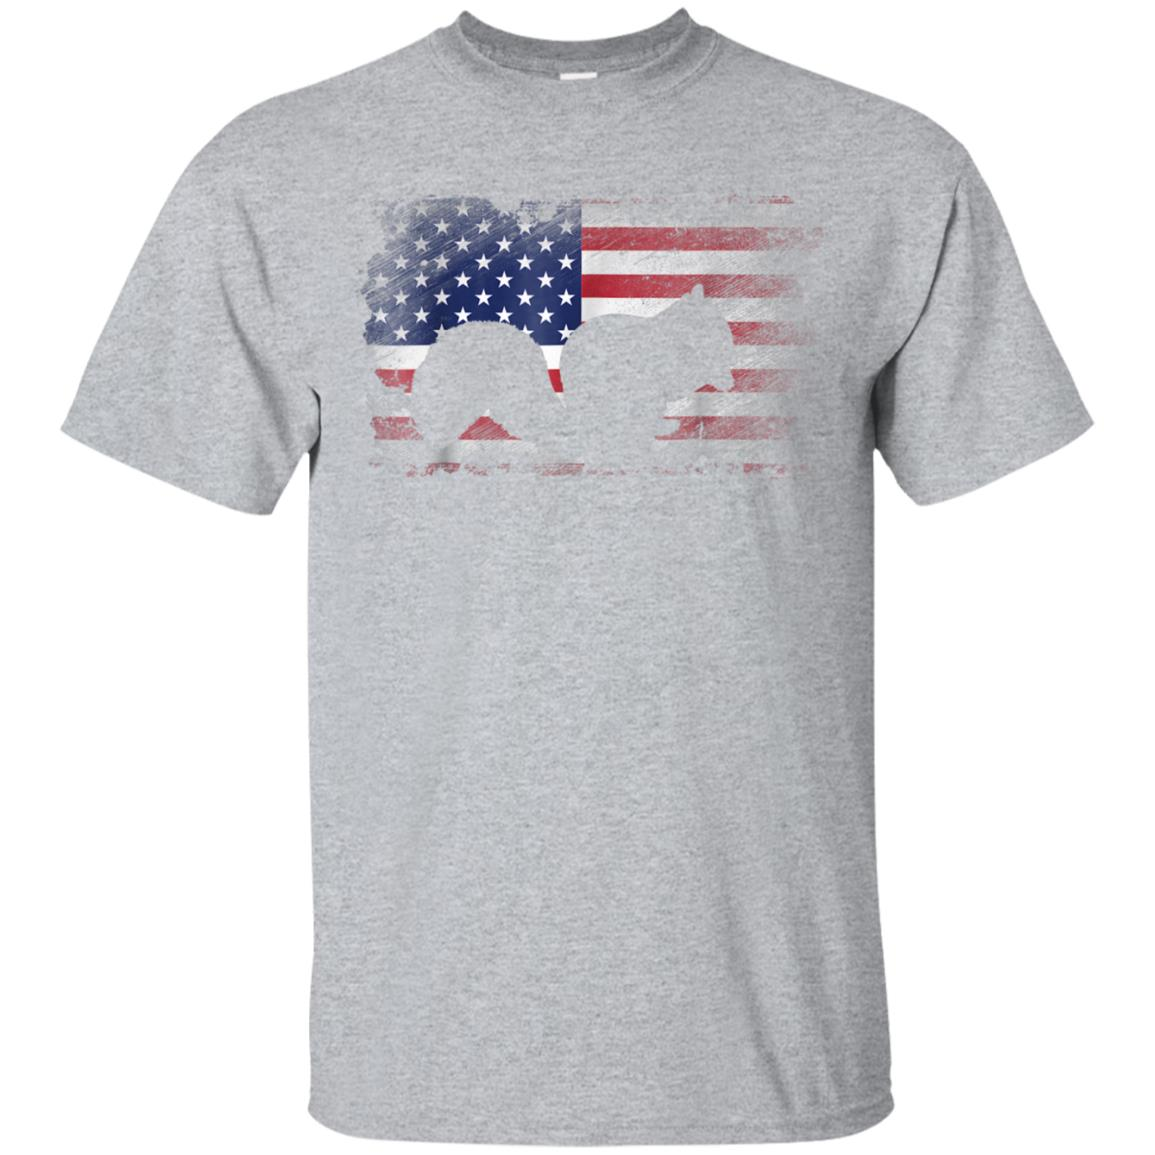 Squirrel T Shirt American Flag USA Patriotic Squirrel Gift 99promocode